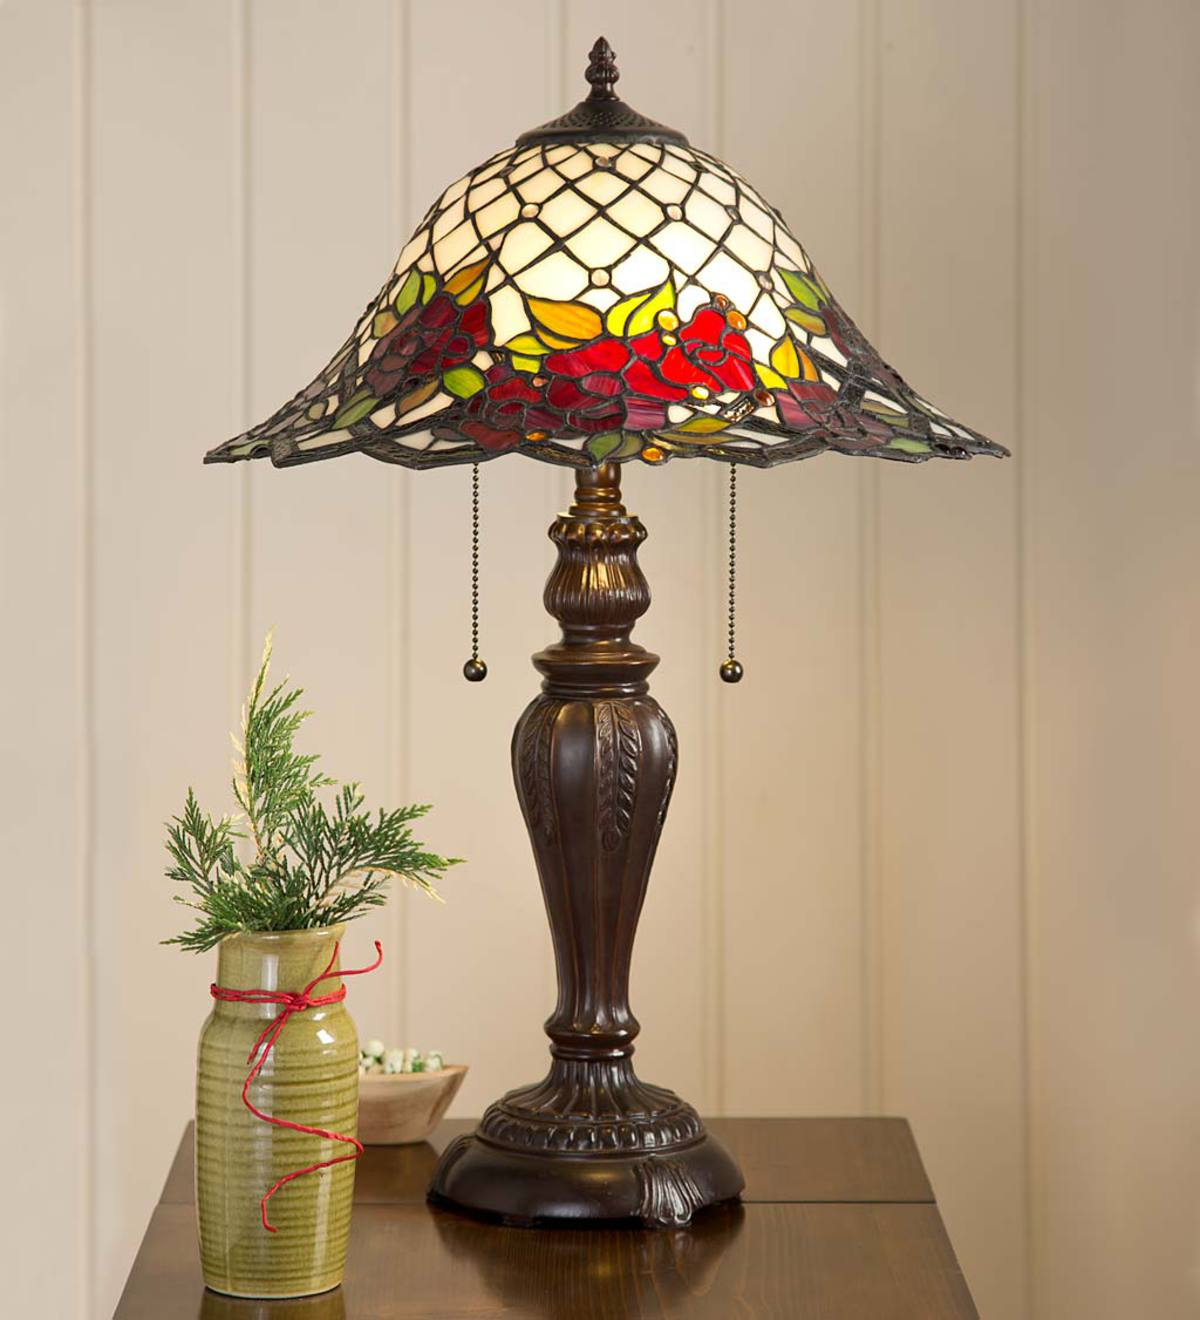 Chesterfield Tiffany Style Stained Glass Table Lamp Plowhearth